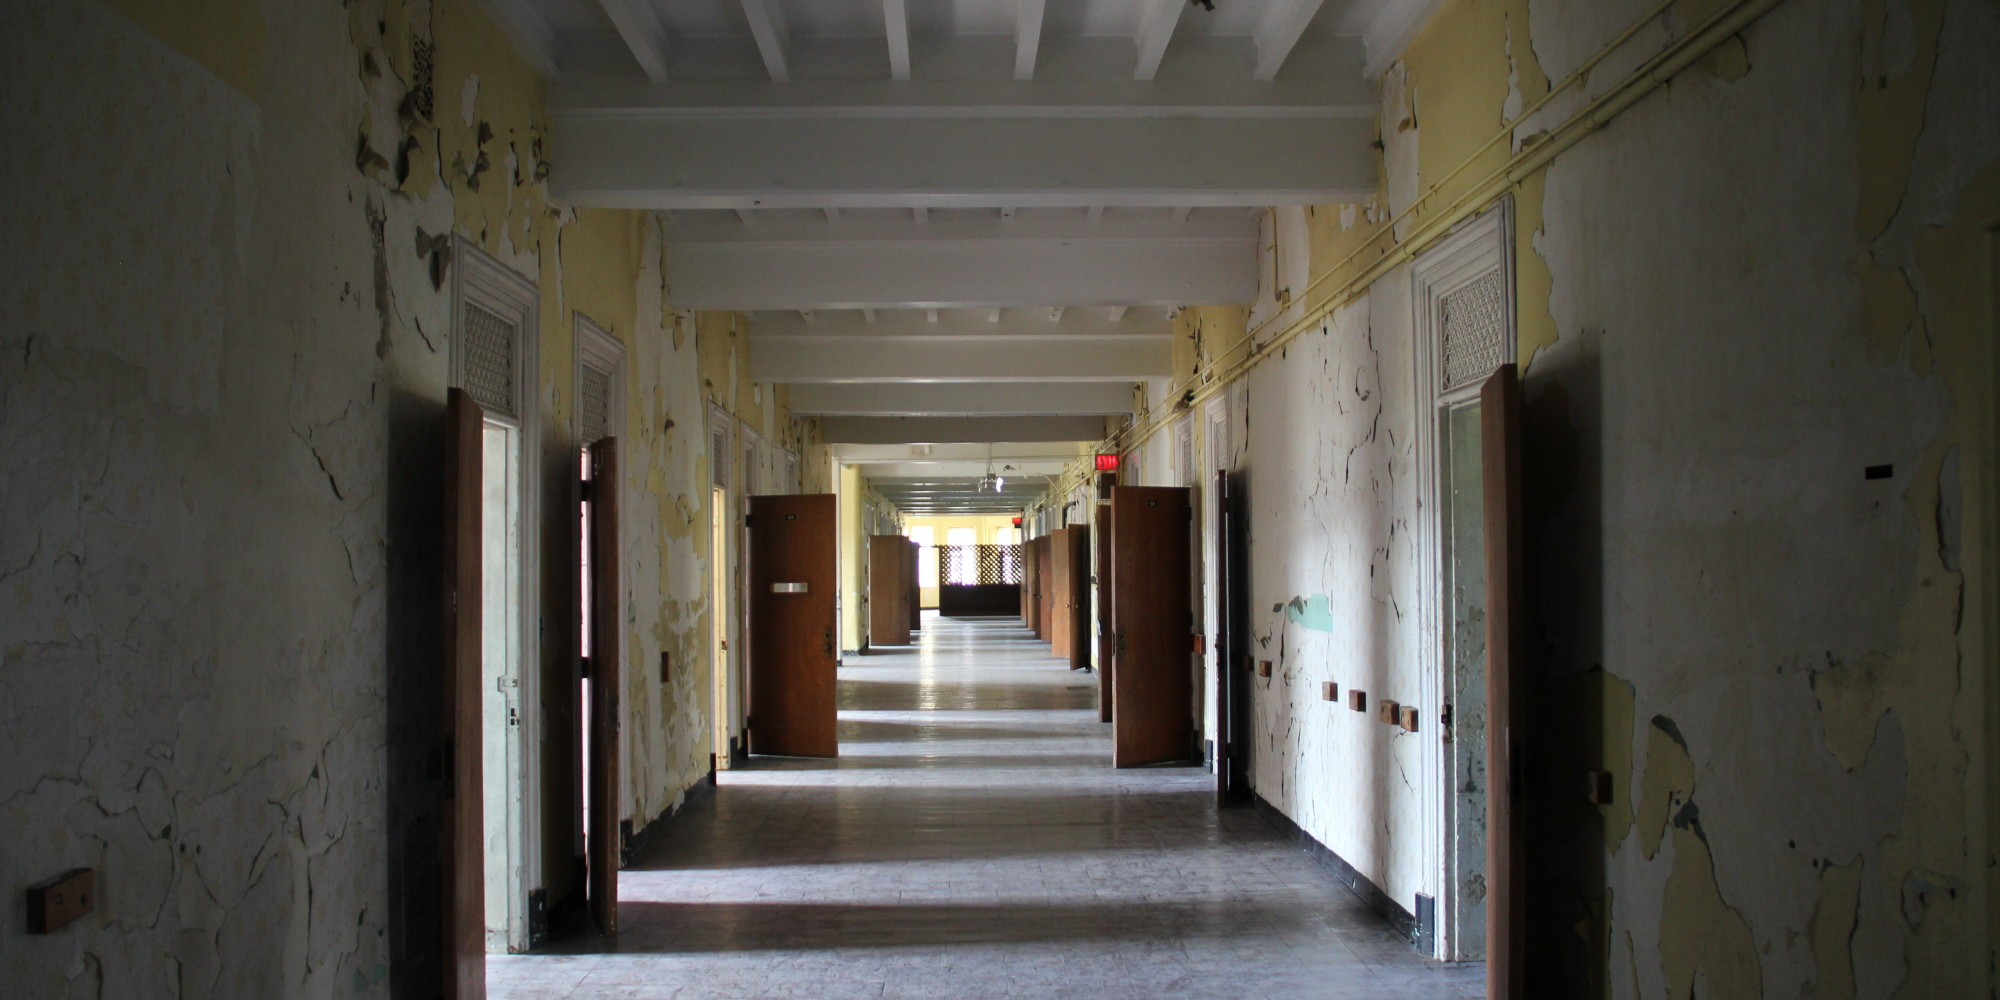 These May Be The Sounds Of Ghosts In An Abandoned Insane